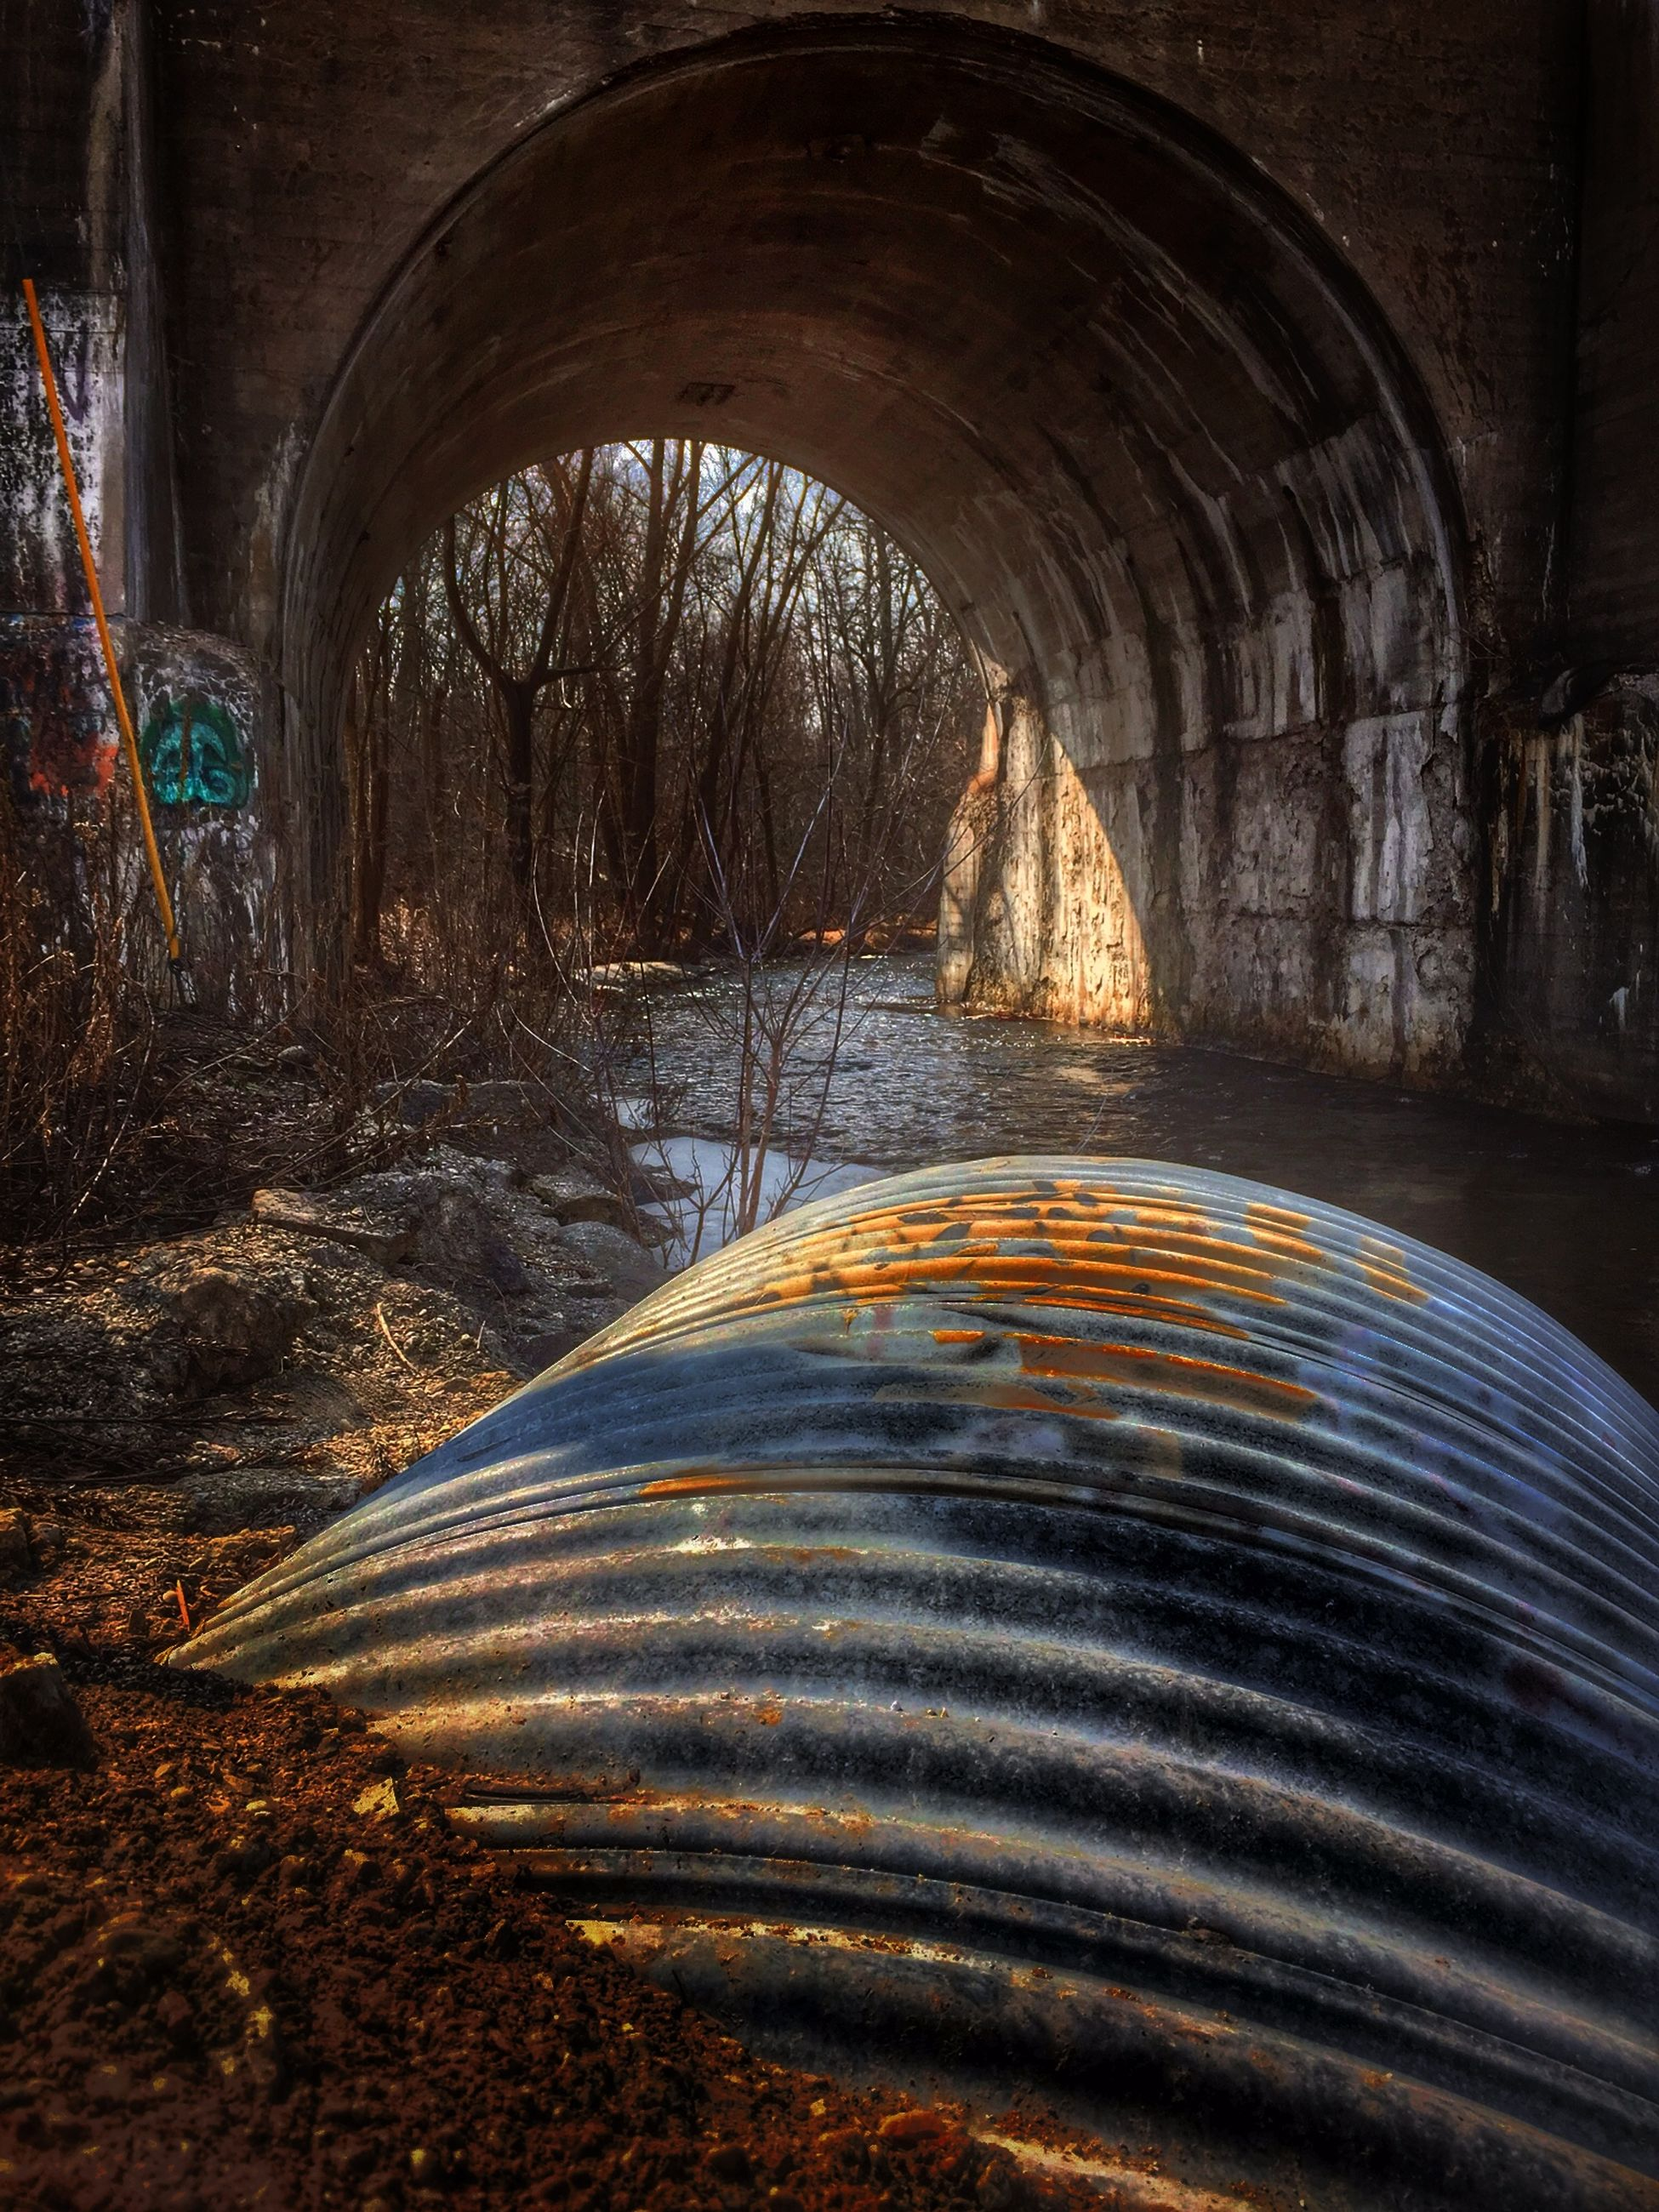 arch, the way forward, built structure, architecture, illuminated, tunnel, diminishing perspective, connection, vanishing point, bridge - man made structure, archway, tree, night, arch bridge, road, long exposure, transportation, no people, bridge, motion